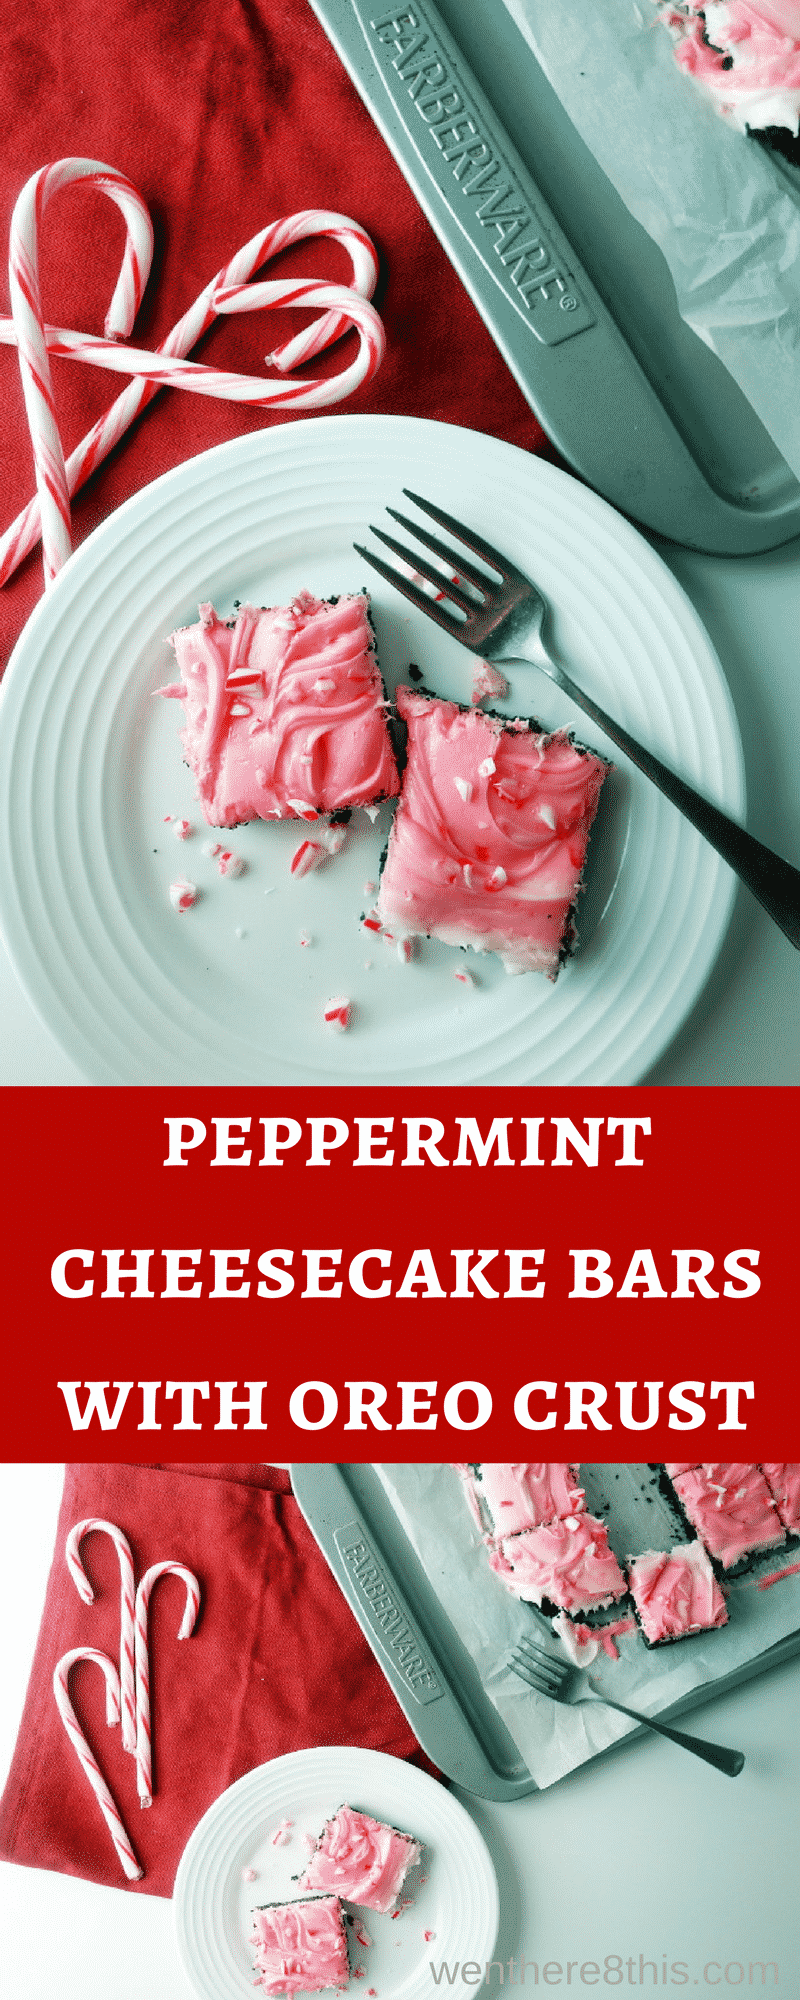 If you like no bake desserts, these no bake peppermint cheesecake bars with Oreo crust are the perfect holiday dessert! Quick, easy and great for parties!peppermint oreo cheesecake | no bake desserts | candy cane cheesecake | peppermint swirl cheesecake | oreo crust | no bake peppermint cheesecake | Christmas desserts | no bake cheesecake | mint chocolate | chocolate peppermint cheesecake